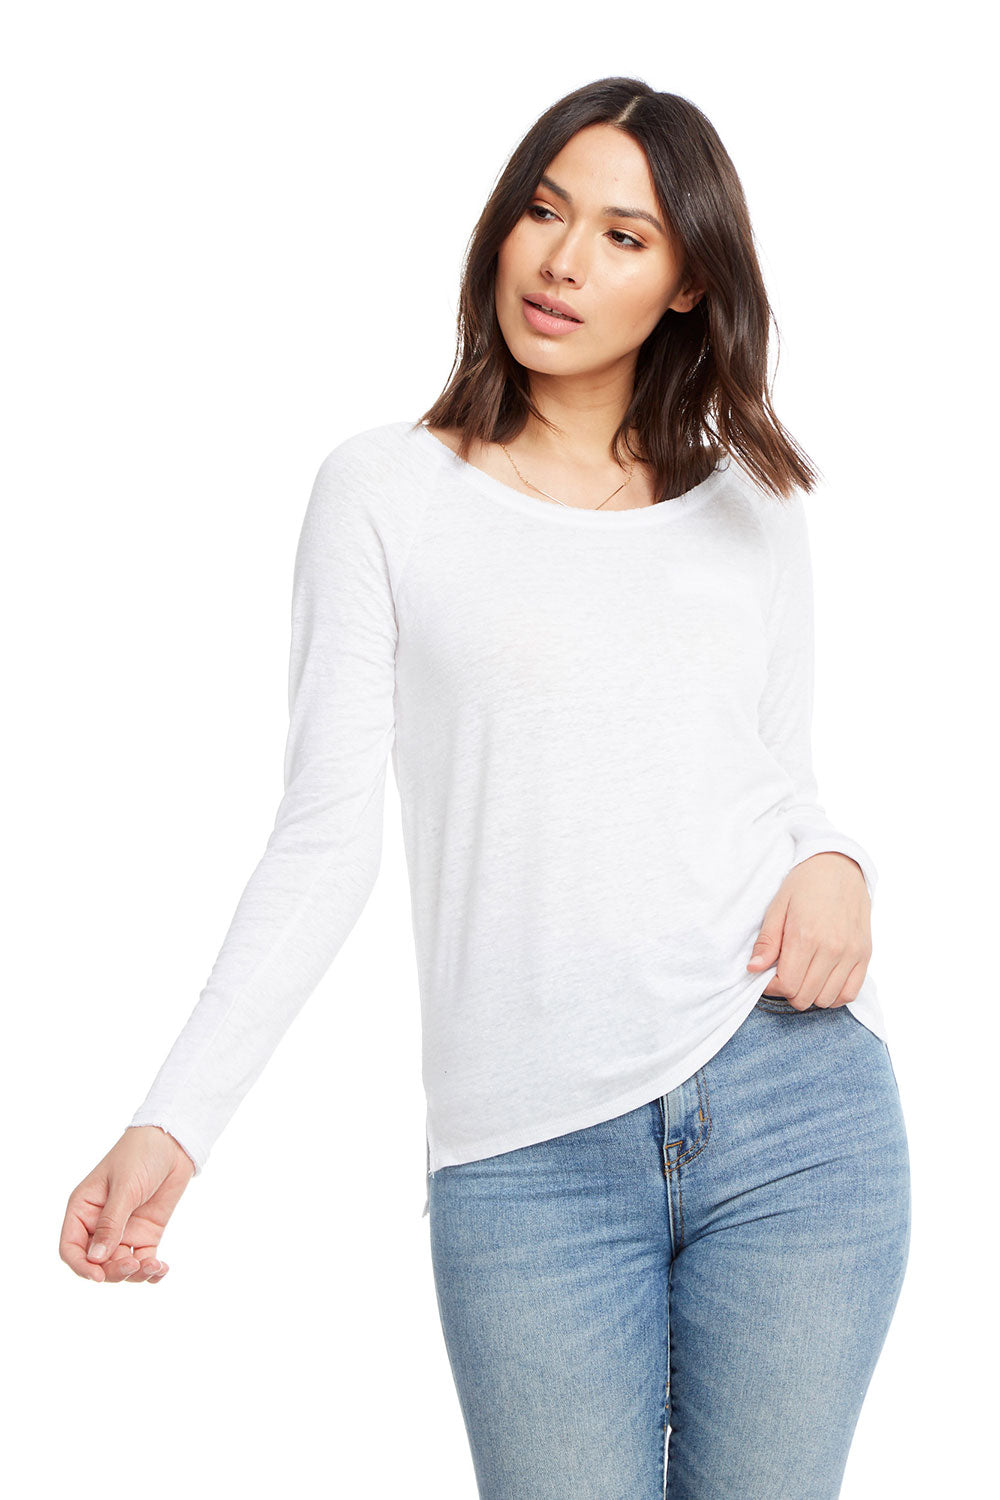 Linen Jersey Long Sleeve Hi Lo Open Neck Welt Pocket Raglan Tee WOMENS chaserbrand4.myshopify.com